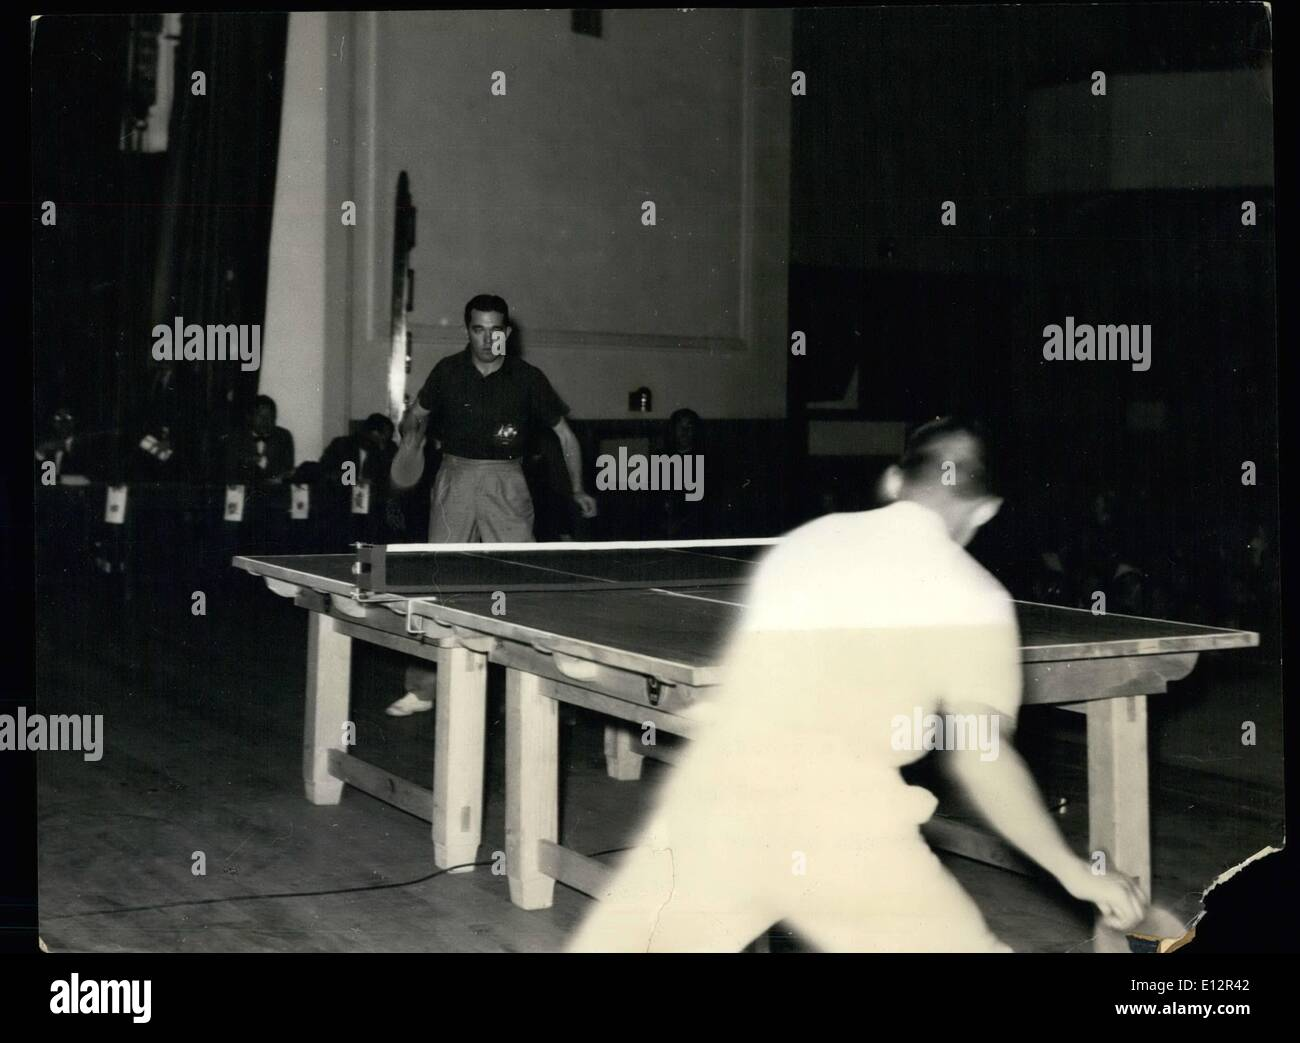 Feb. 24, 2012 - Pan-Pacific table tennis tourney: Kenneth Adamson of Australia playing against Tadaaki Hayashi. - Stock Image